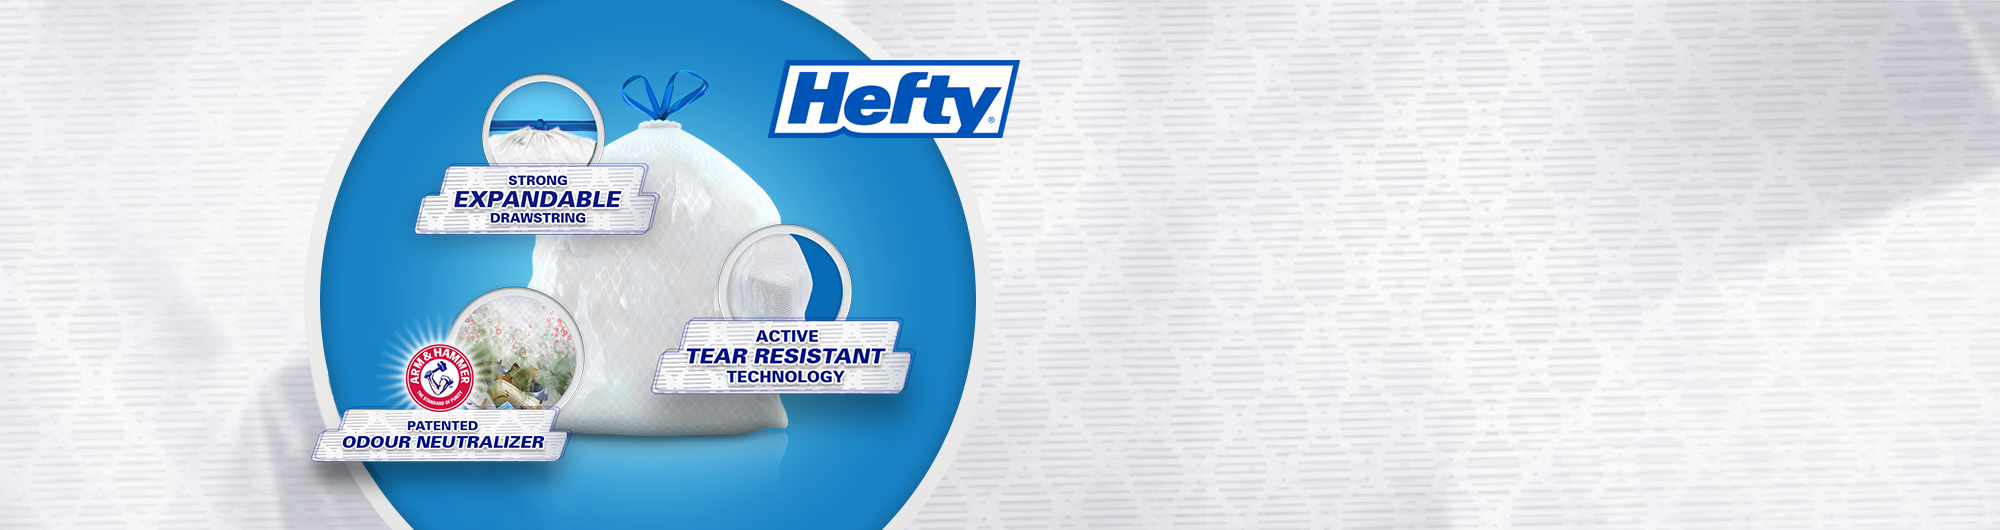 Experience the Hefty Difference